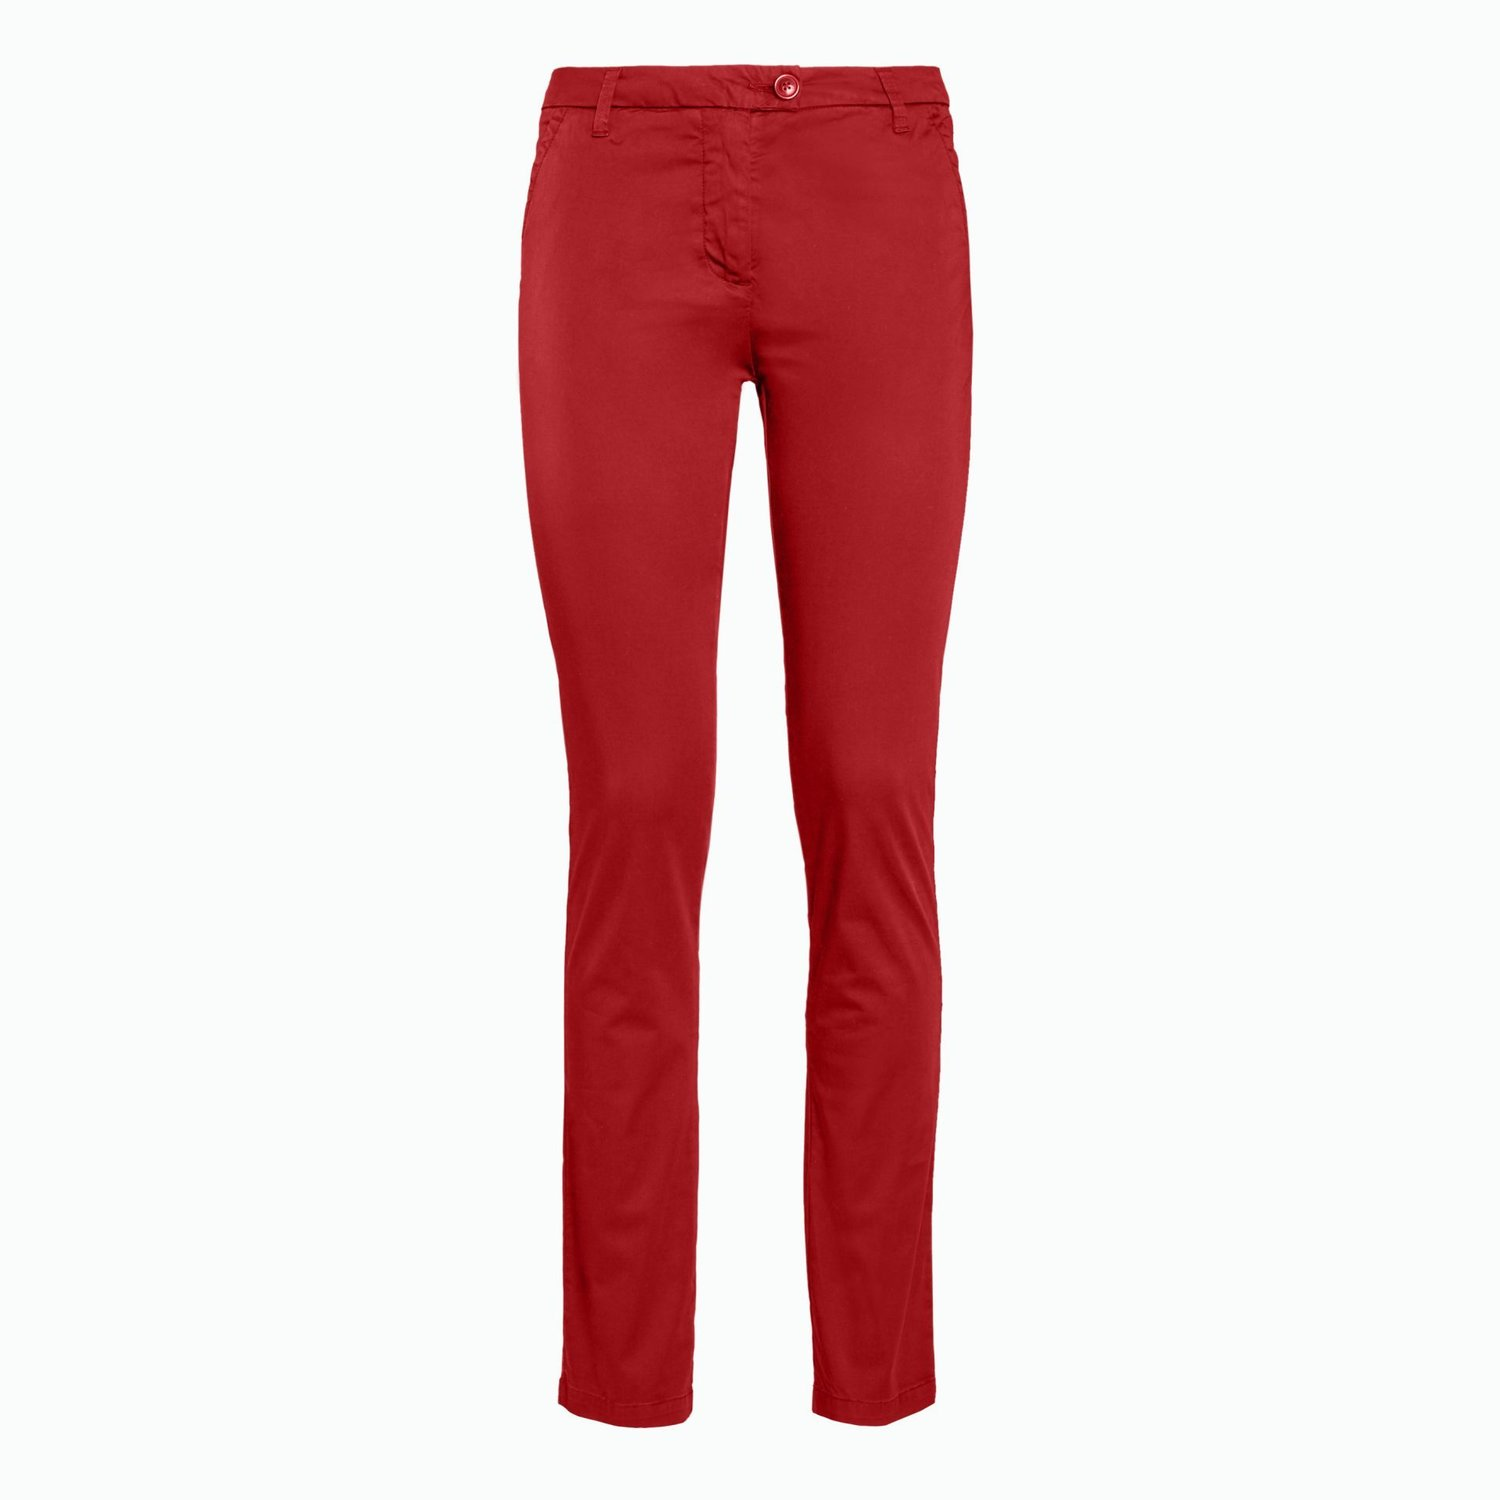 Trouser A2 - Rojo Chili